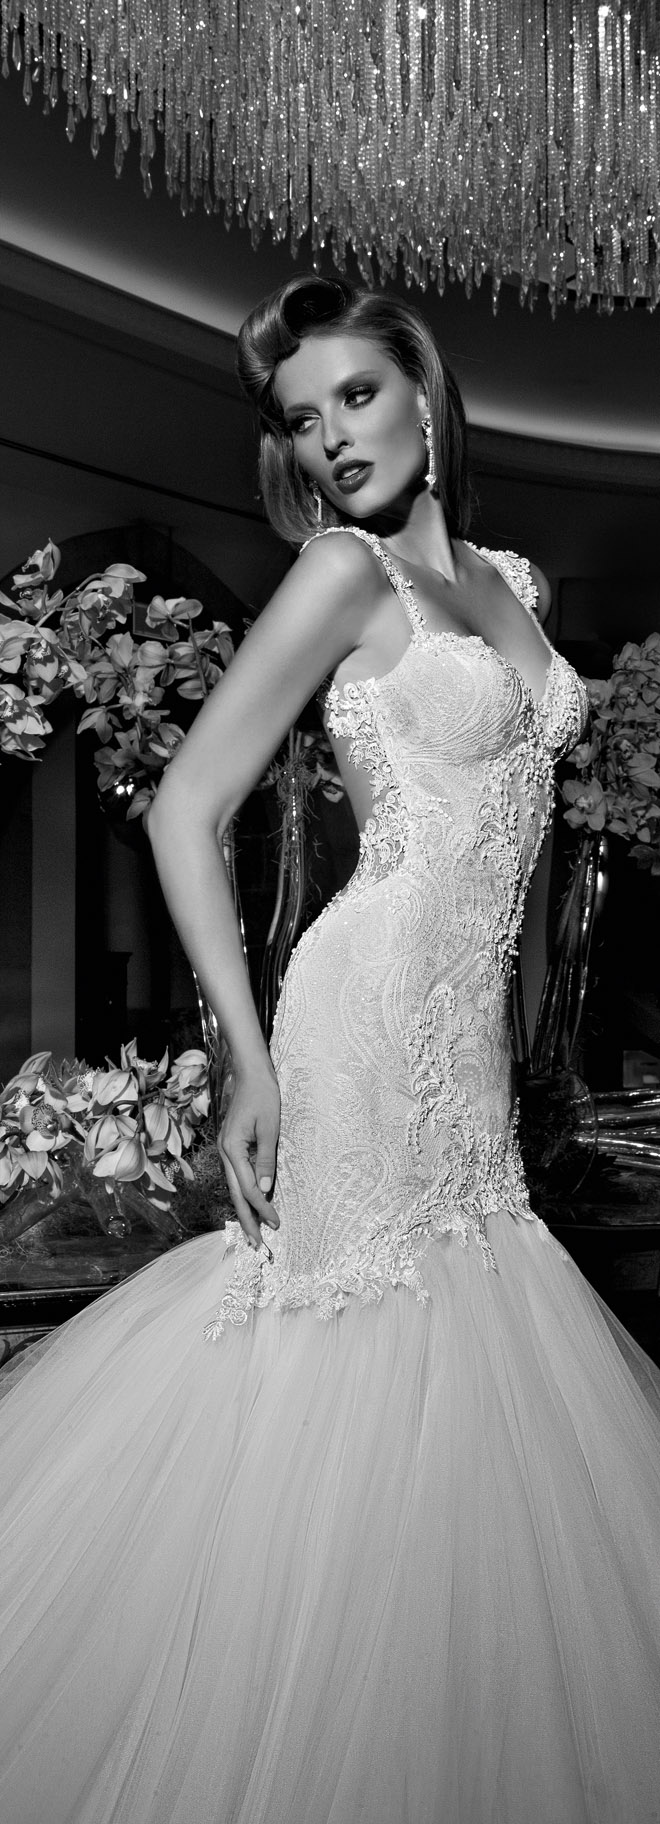 Galia-lahav-Tales-of-the-Jazz-Age-bridal-collection-Loretta Front